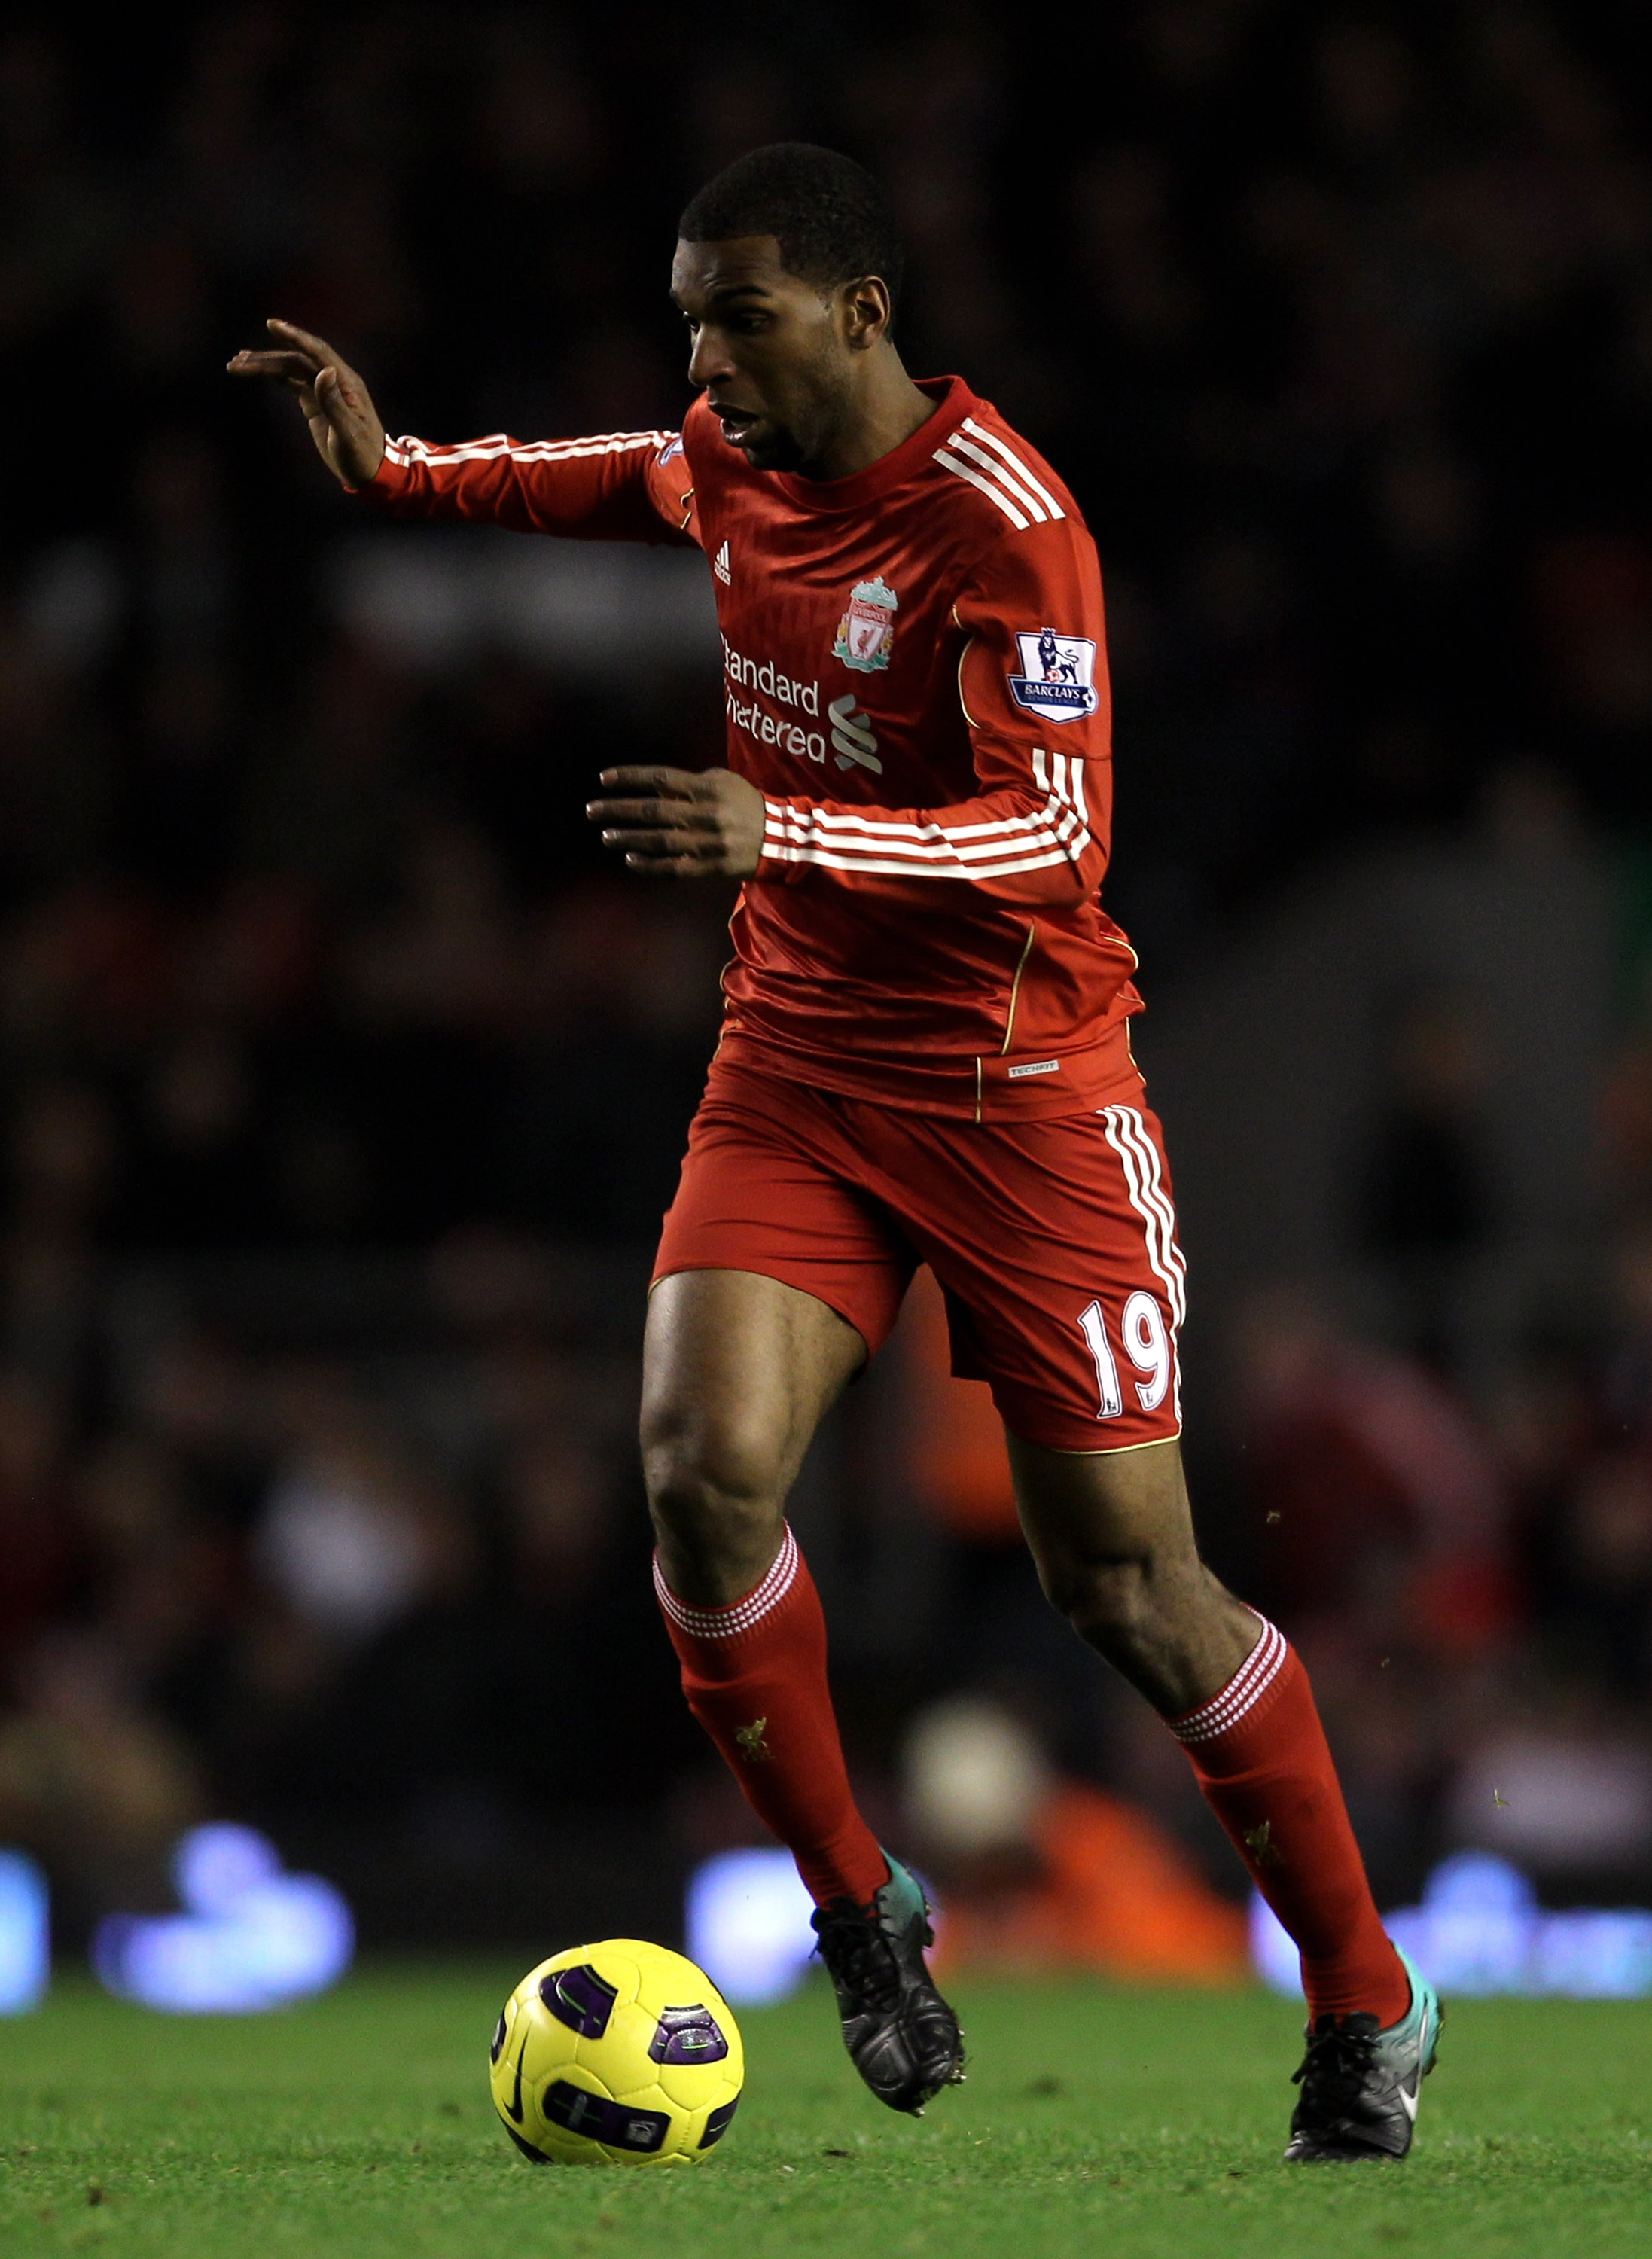 LIVERPOOL, ENGLAND - NOVEMBER 20:  Ryan Babel of Liverpool in action during the Barclays Premier League match between Liverpool and West Ham United at Anfield on November 20, 2010 in Liverpool, England.  (Photo by Alex Livesey/Getty Images)